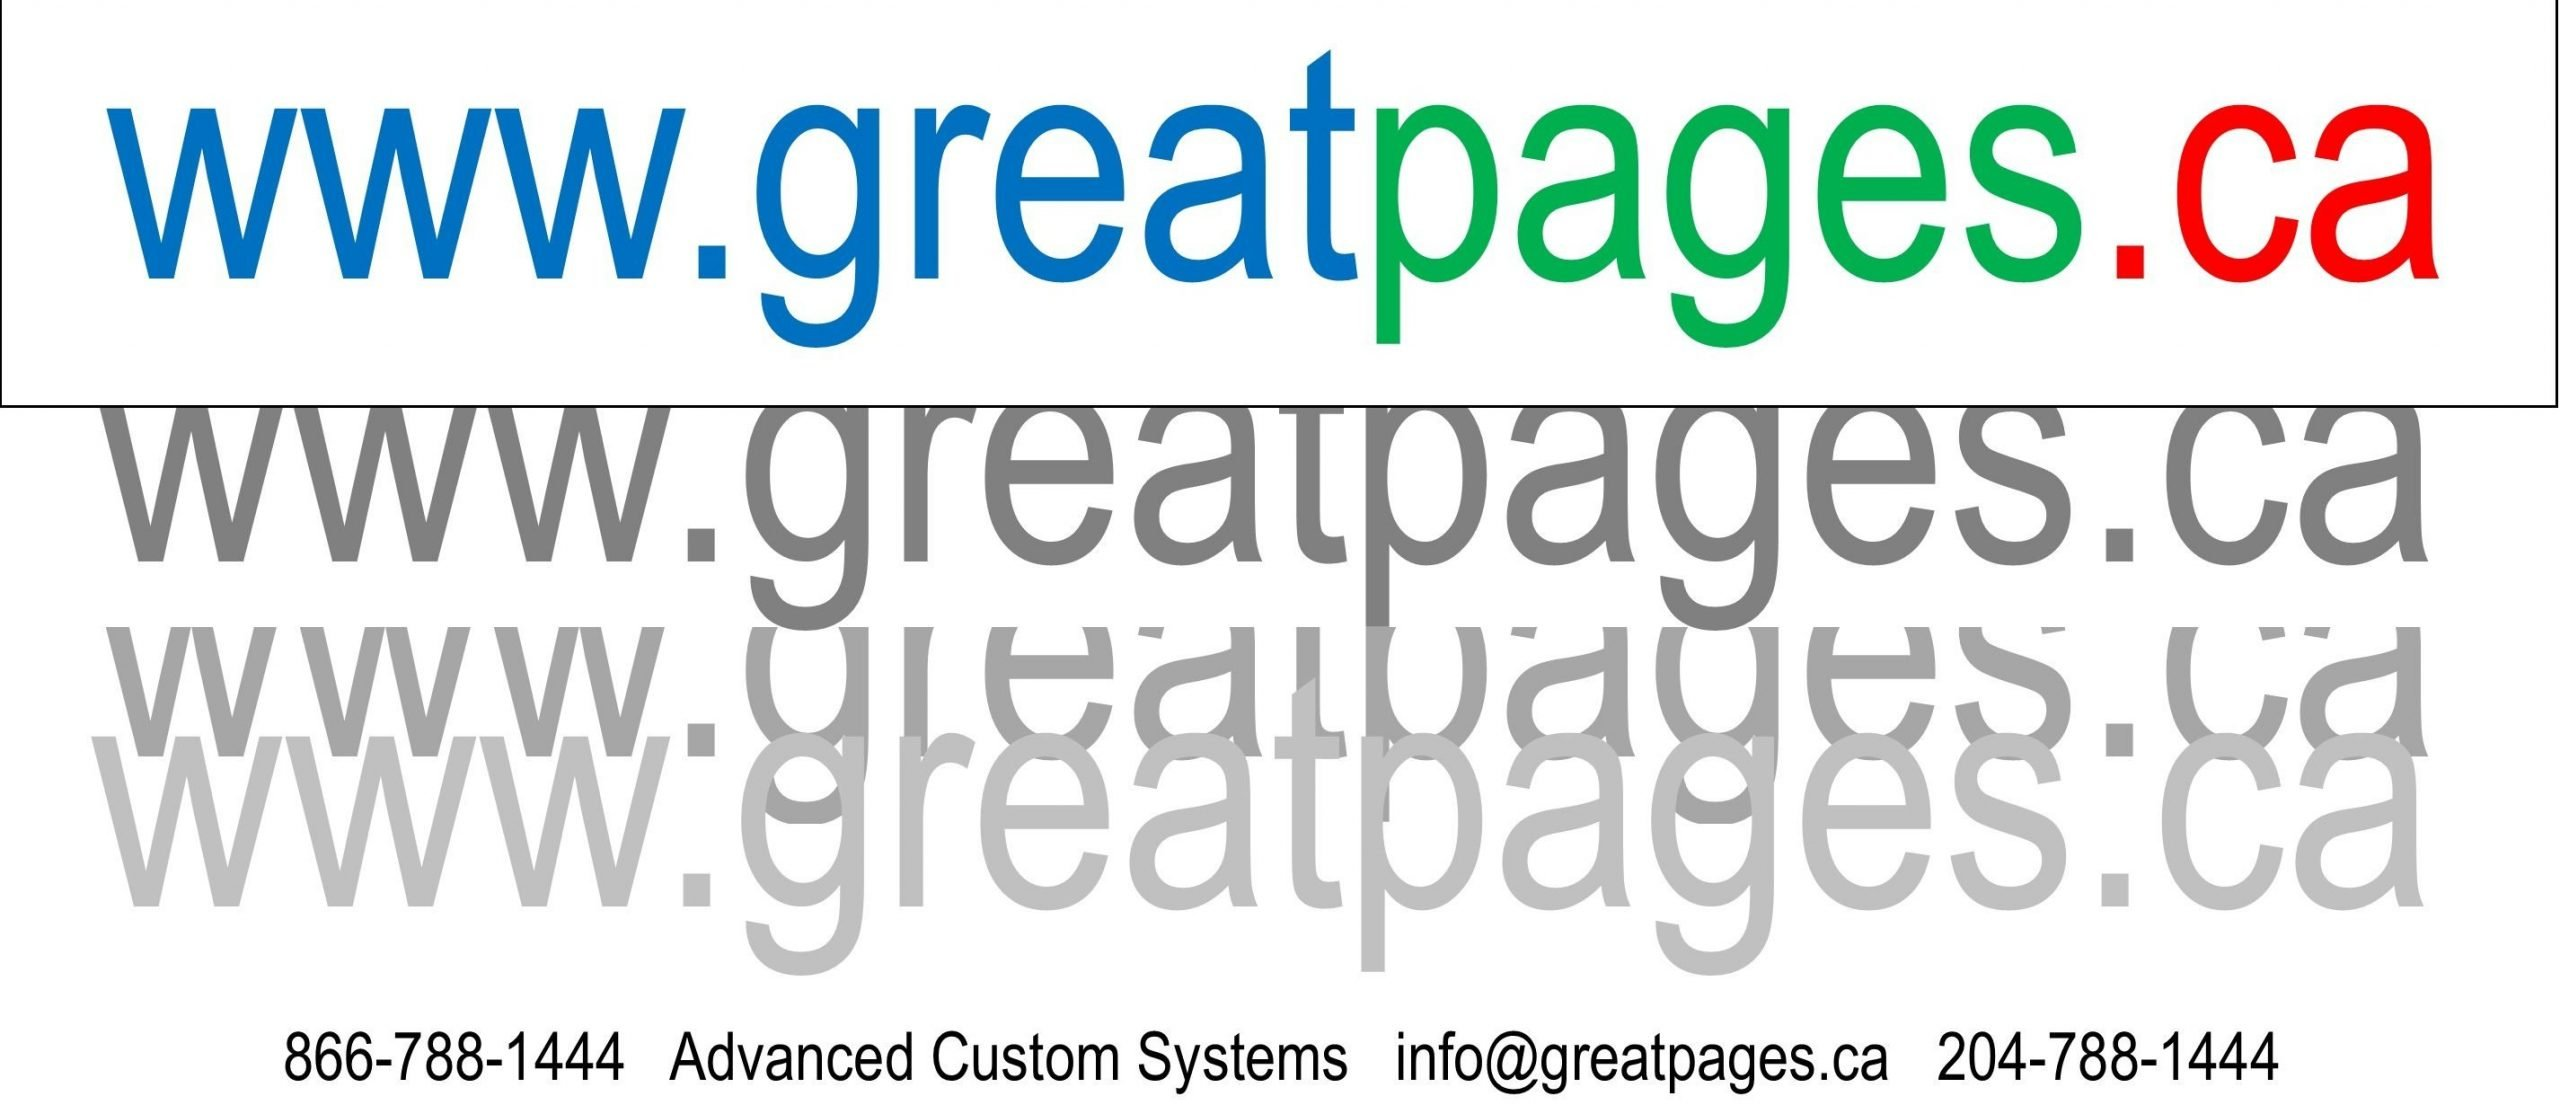 Advanced Custom Systems greatpages.ca